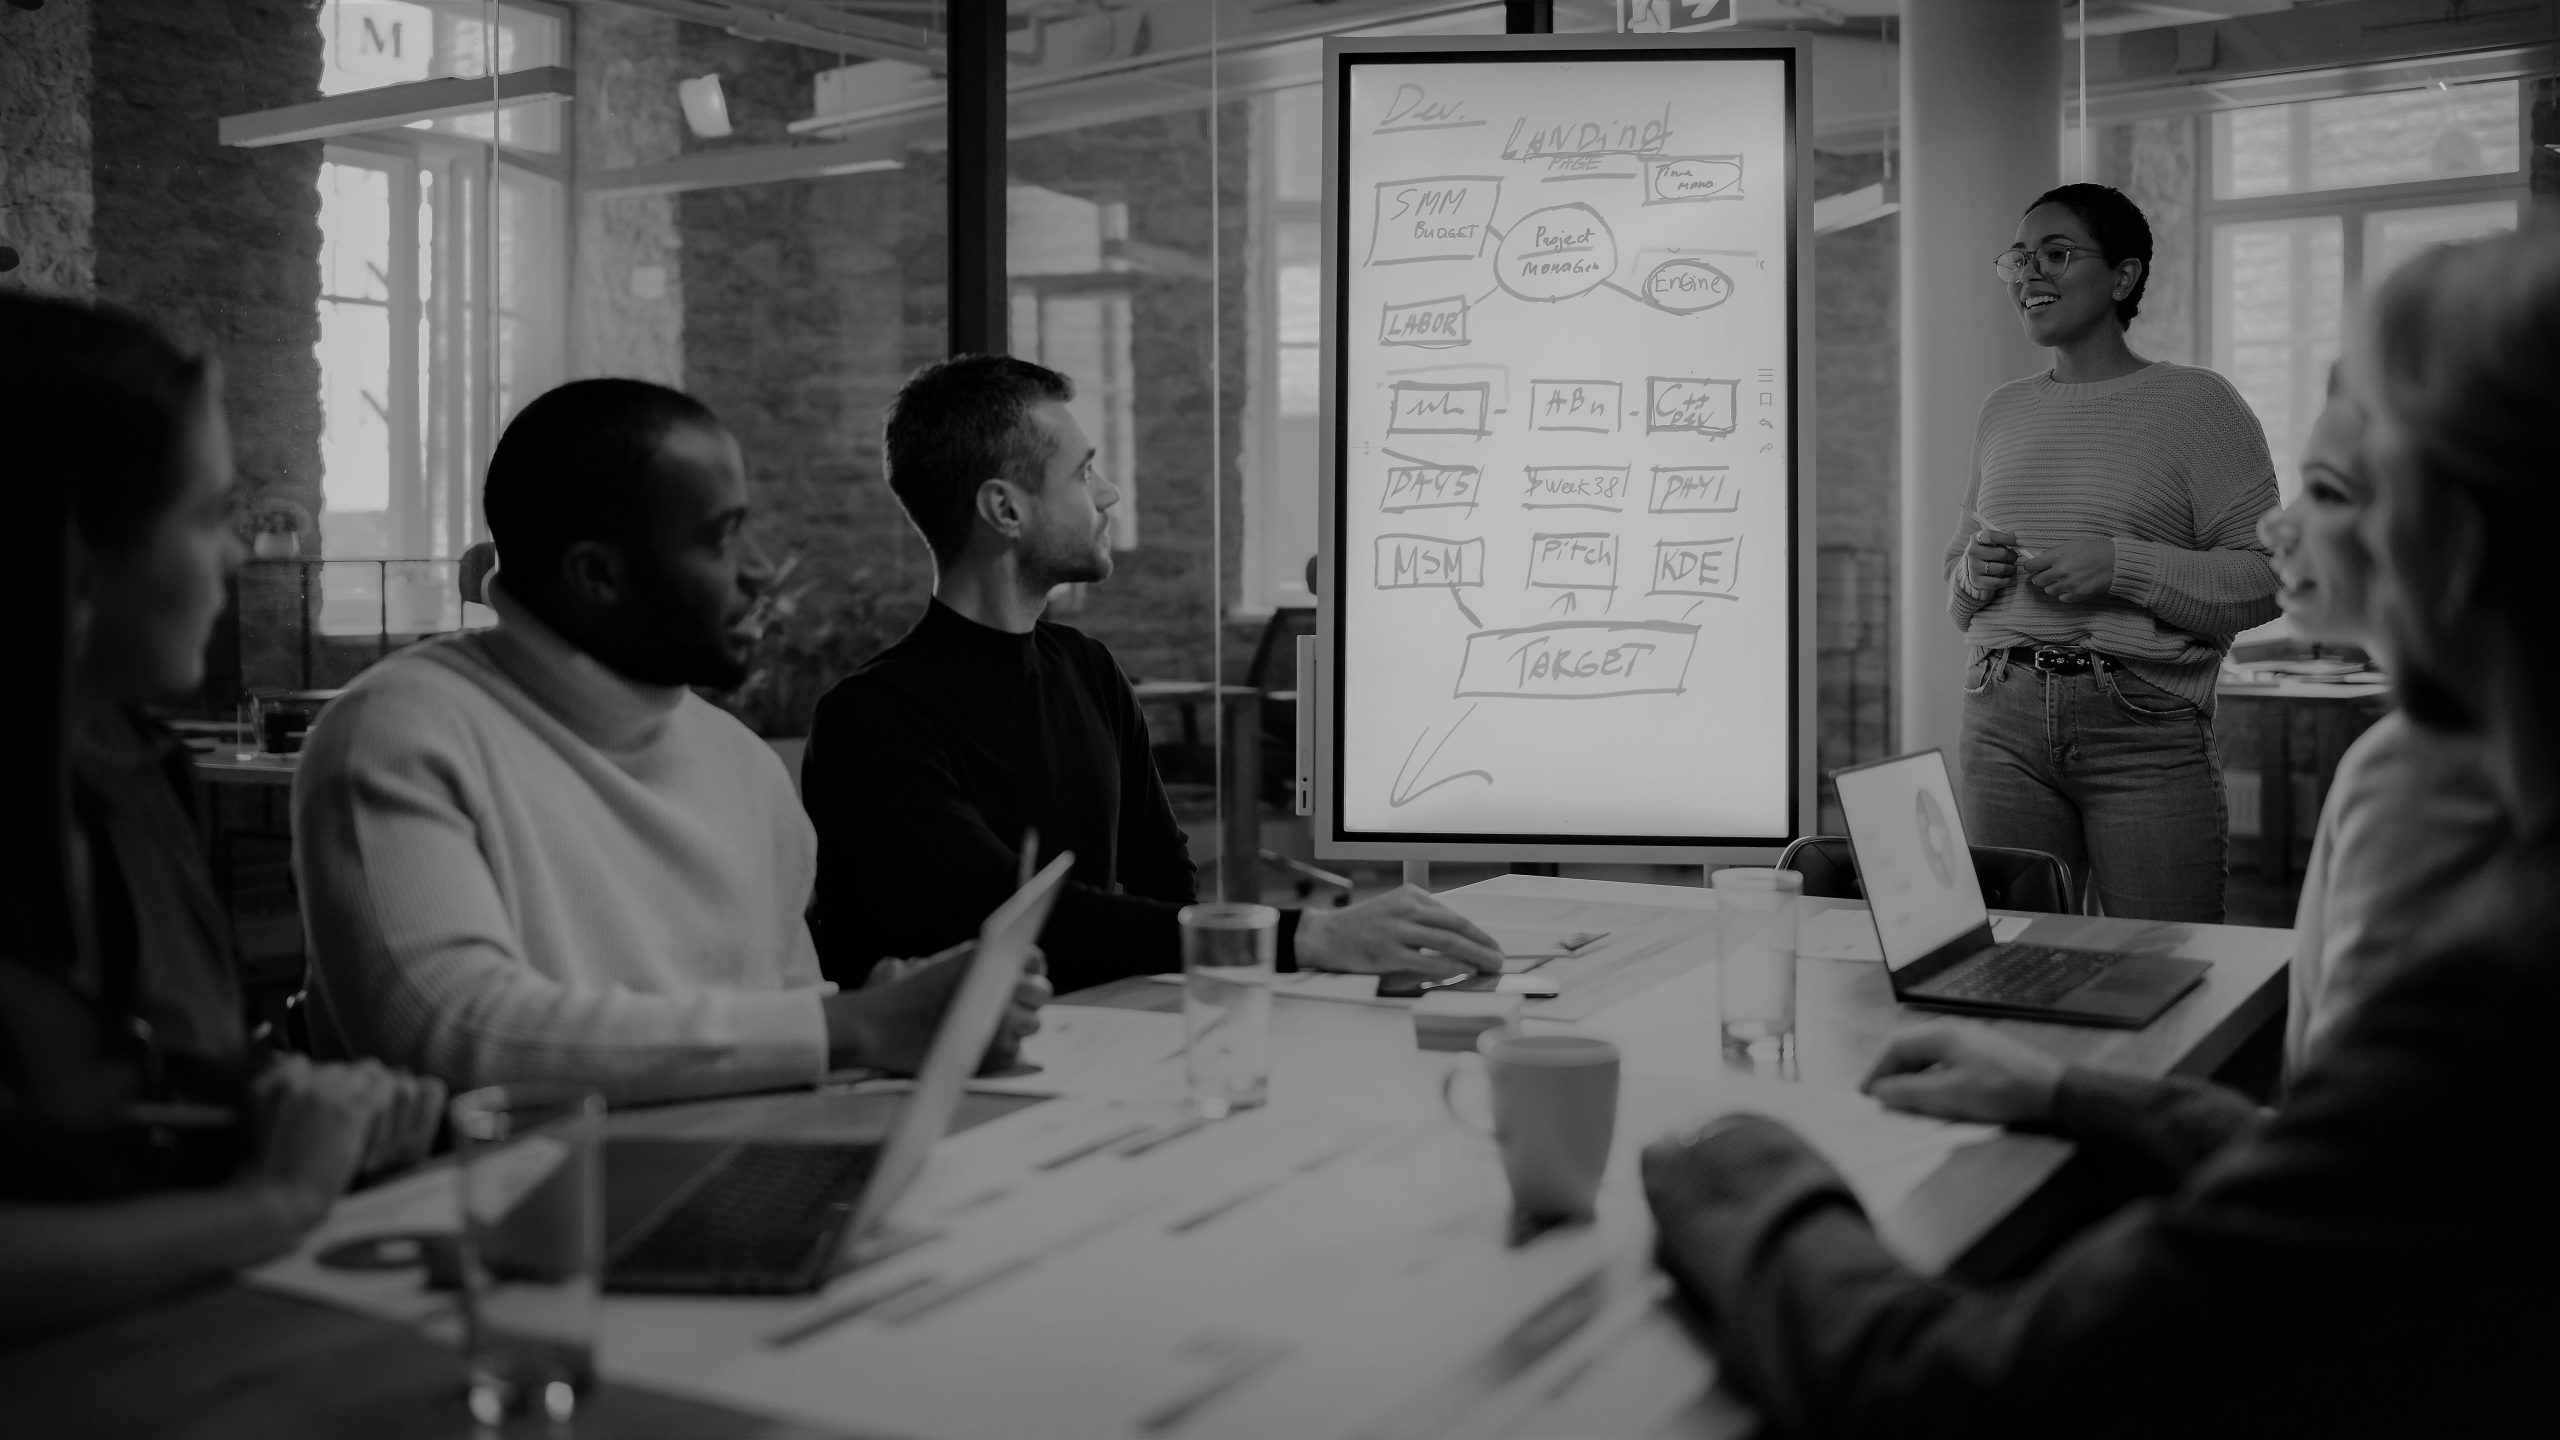 Project Manager Makes a Presentation for a Young Diverse Creative Team in Meeting Room in an Agency. Colleagues Sit Behind Conference Table and Discuss Business Development, User Interface and Design